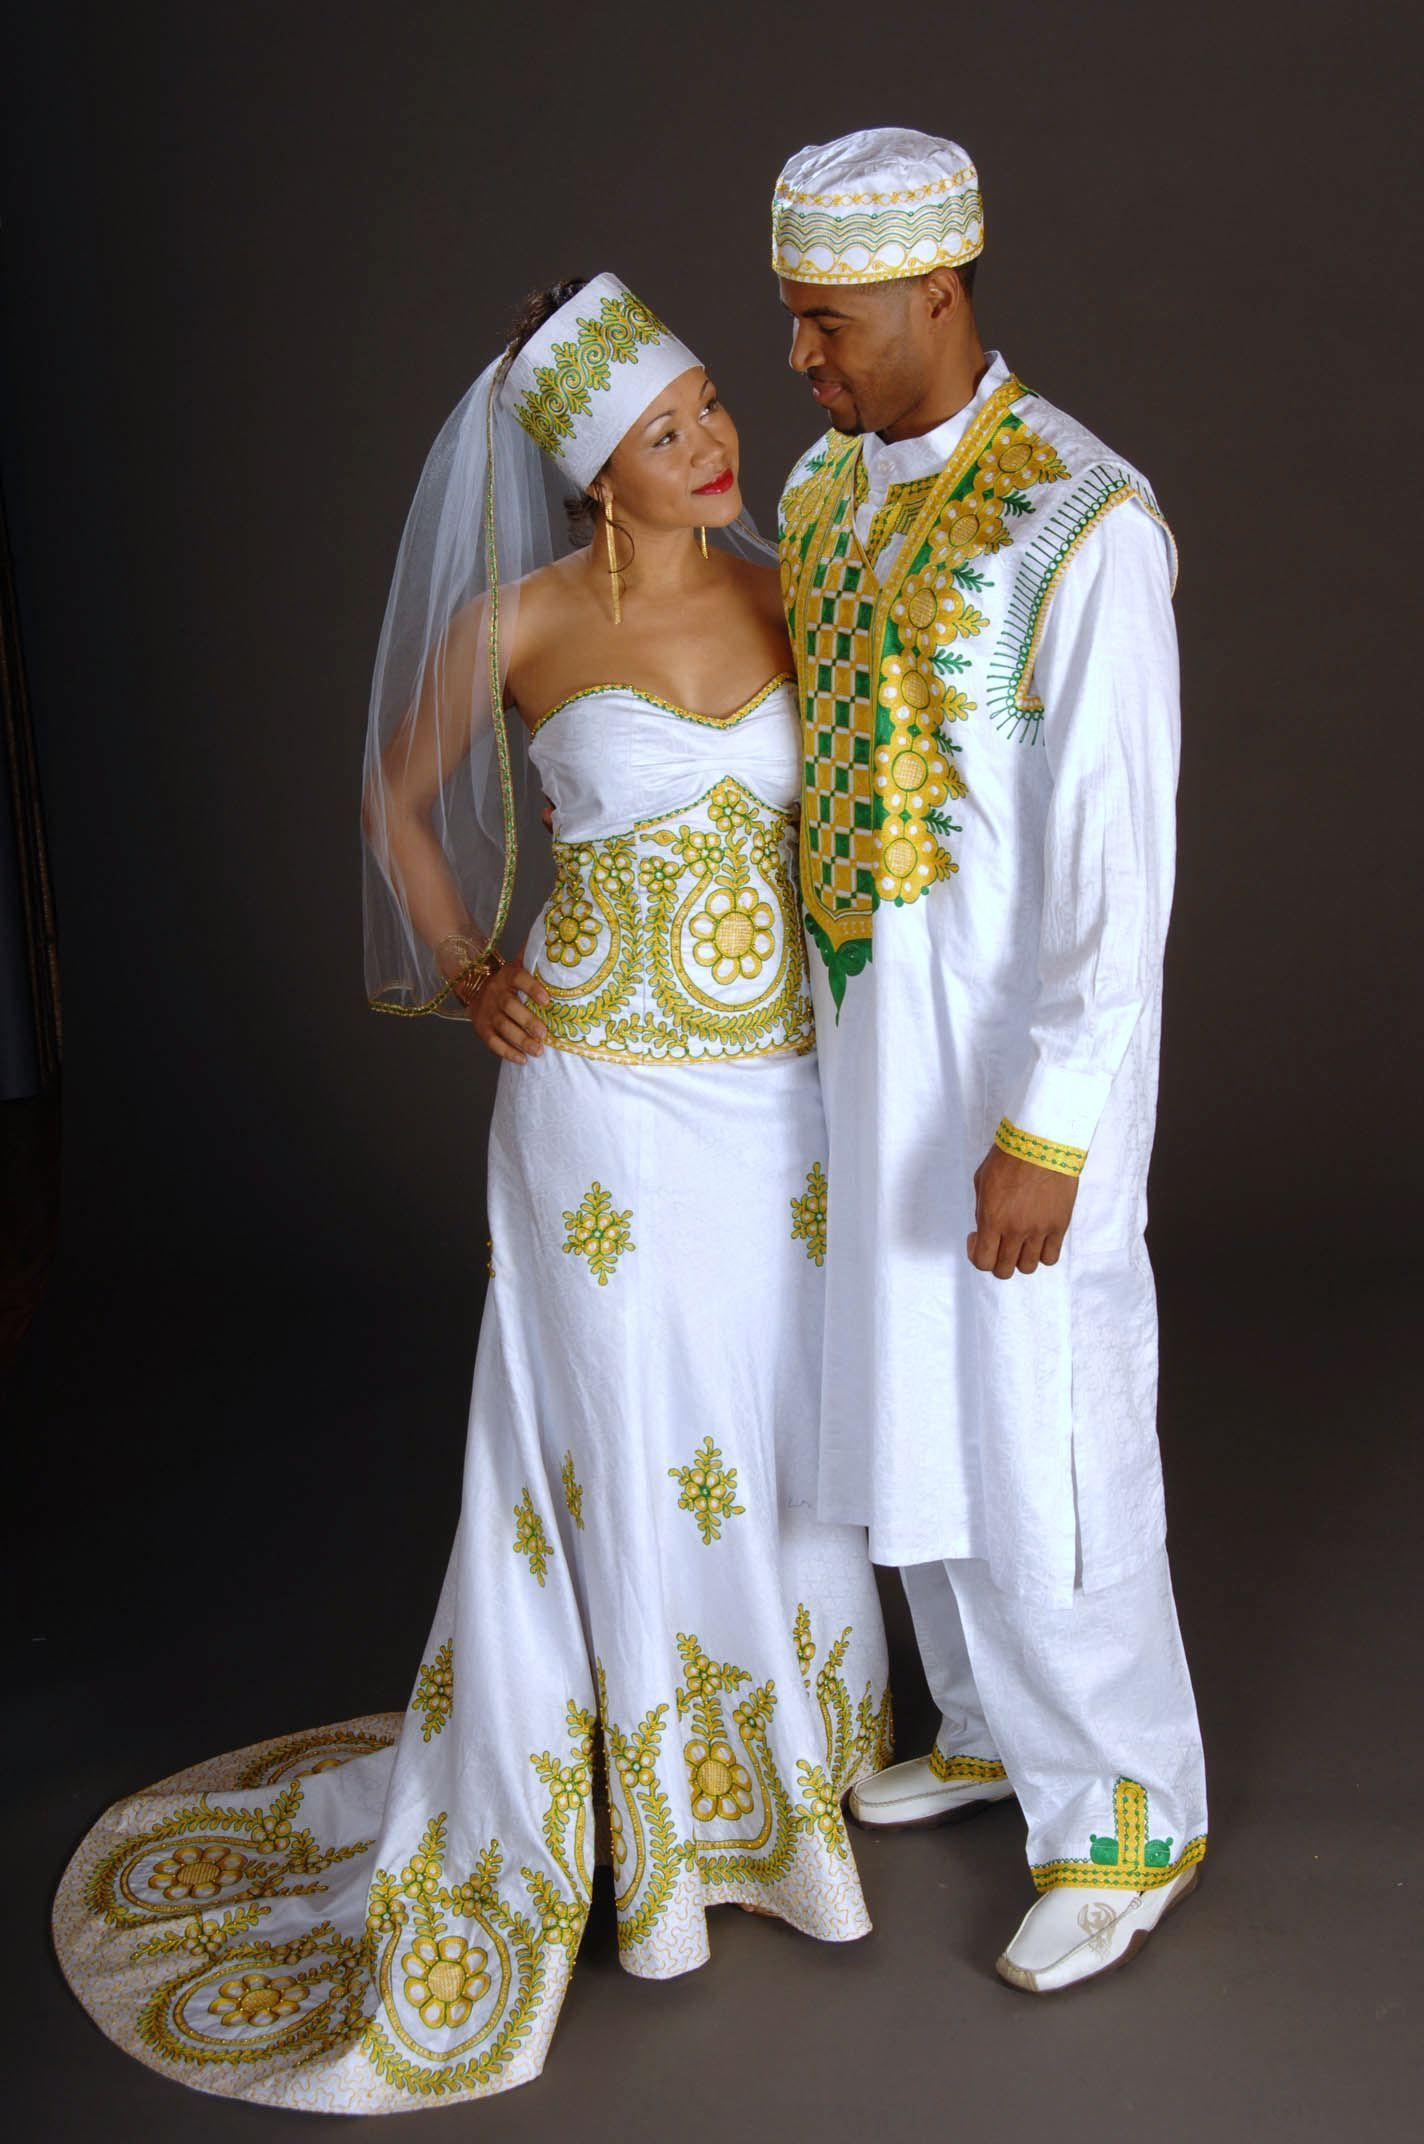 17 Beautiful African Wedding Dresses In 2020 African Clothing African Traditional Dresses African Fashion,Hot Weather Simple Wedding Dresses 2020